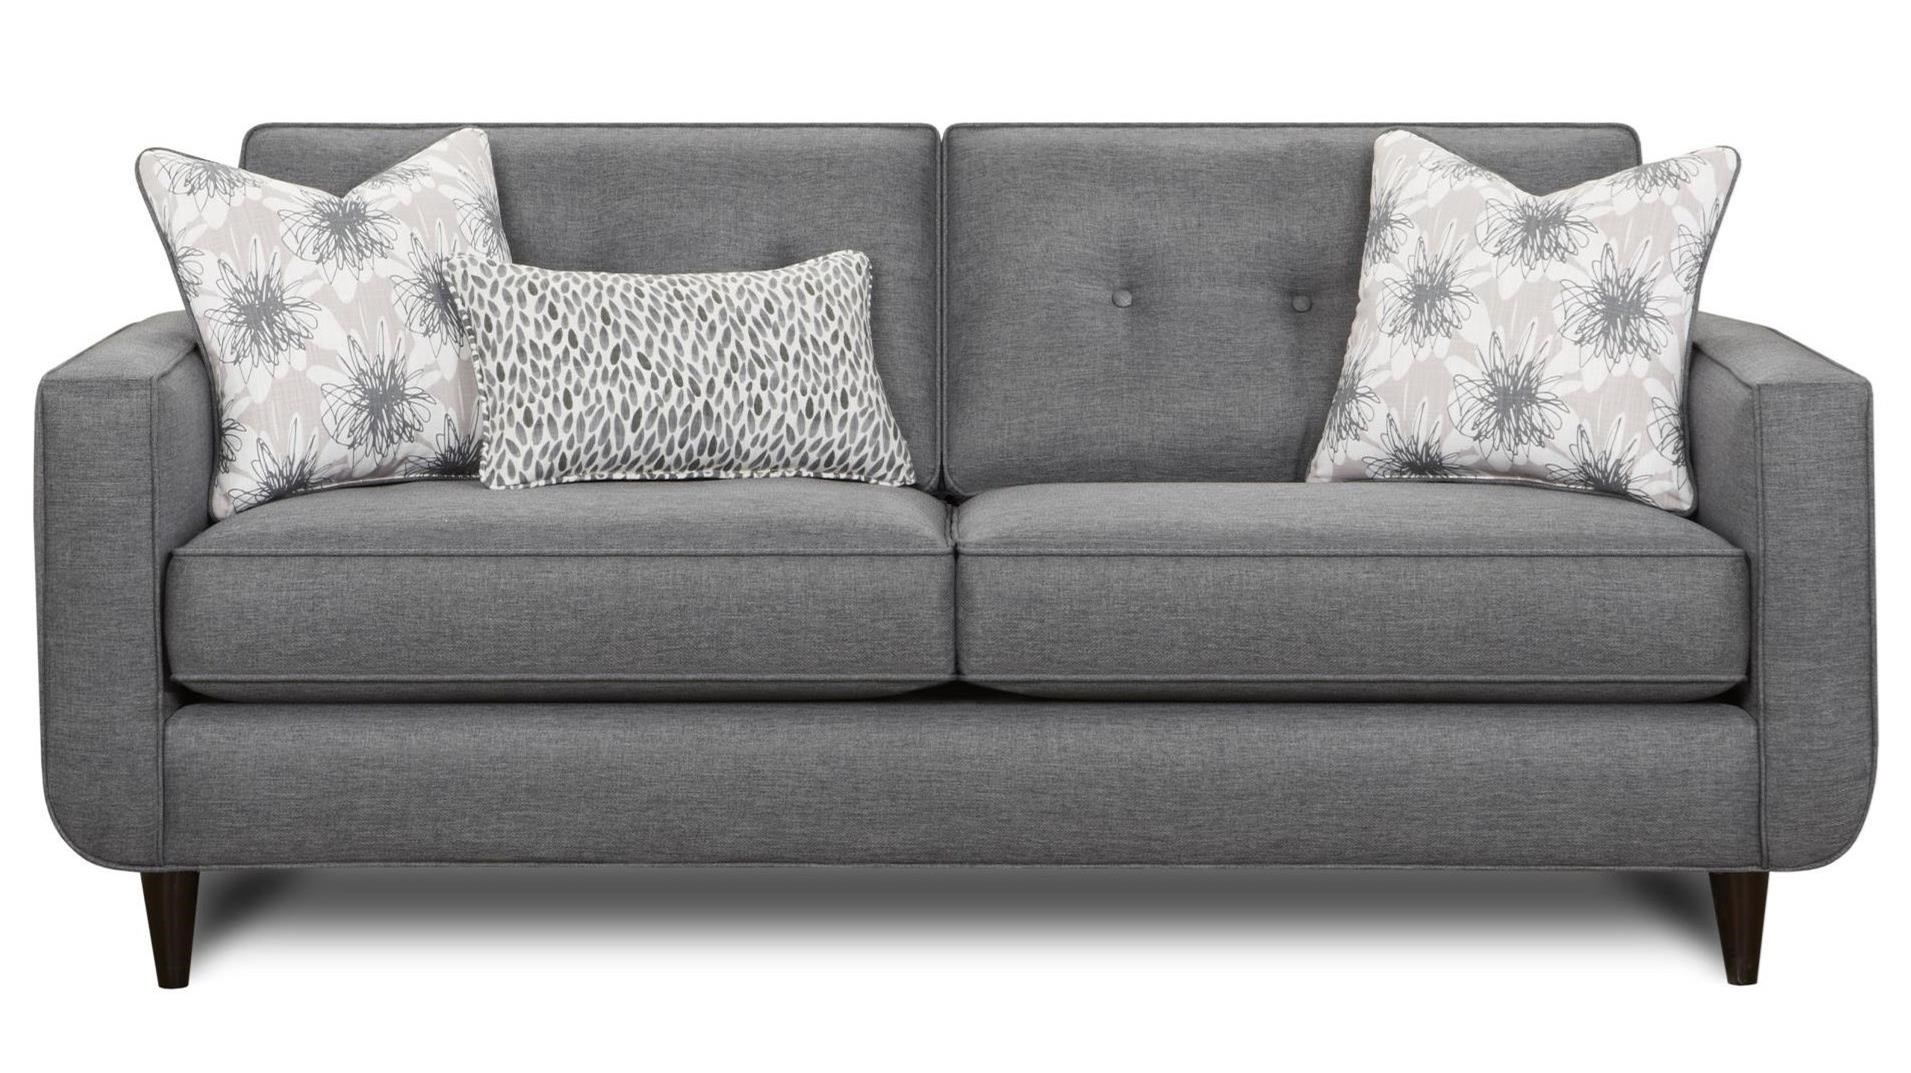 1850 Sofa by Fusion Furniture at Furniture Superstore - Rochester, MN